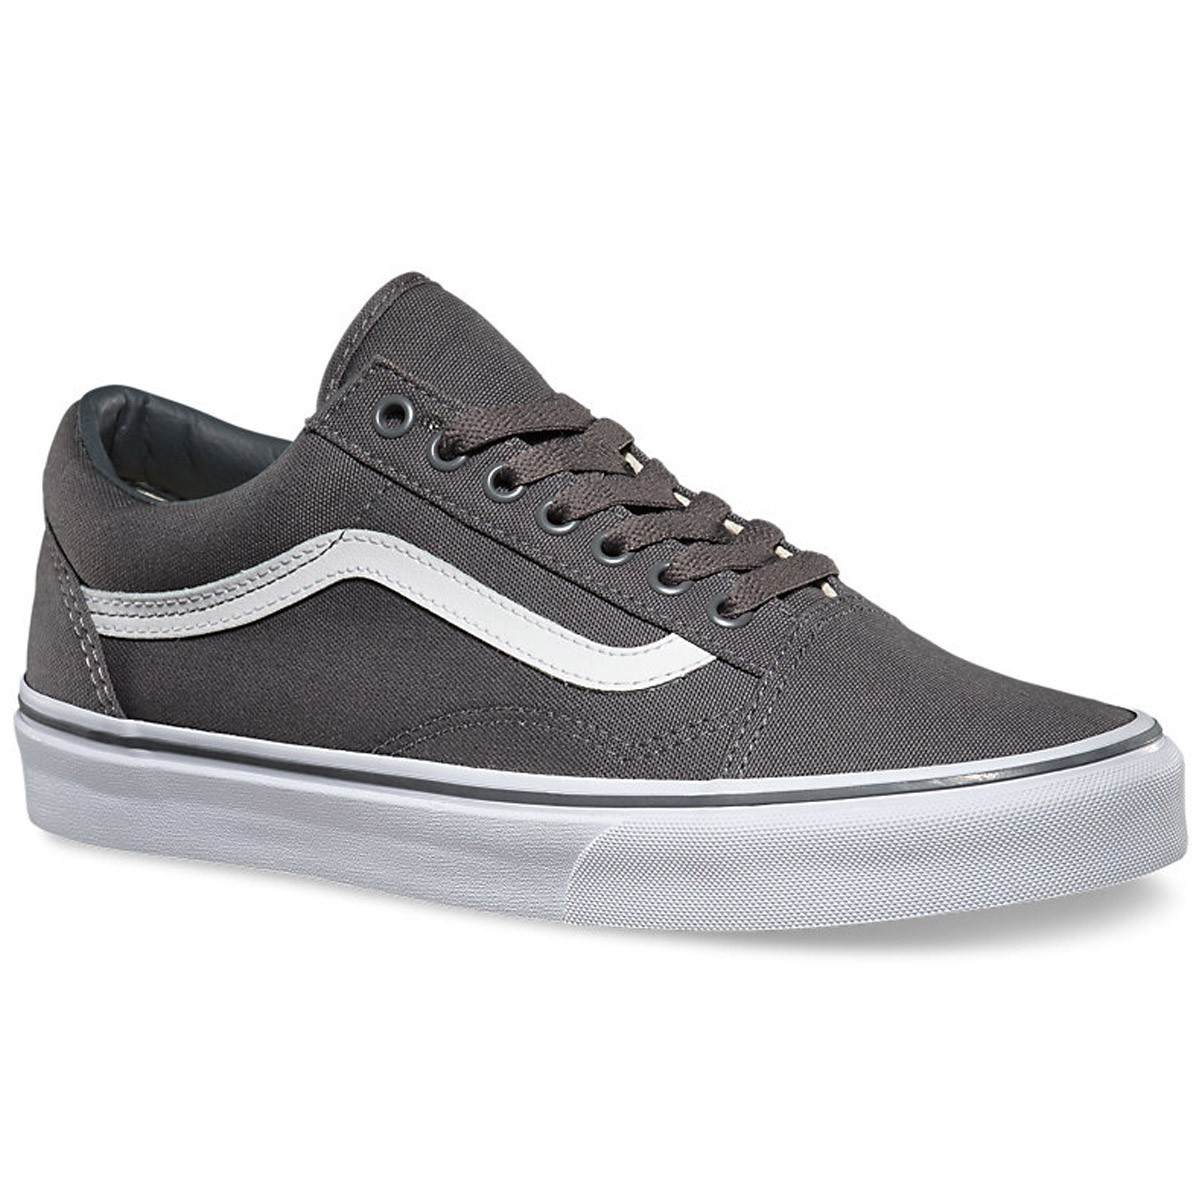 vans old school do chodzenia